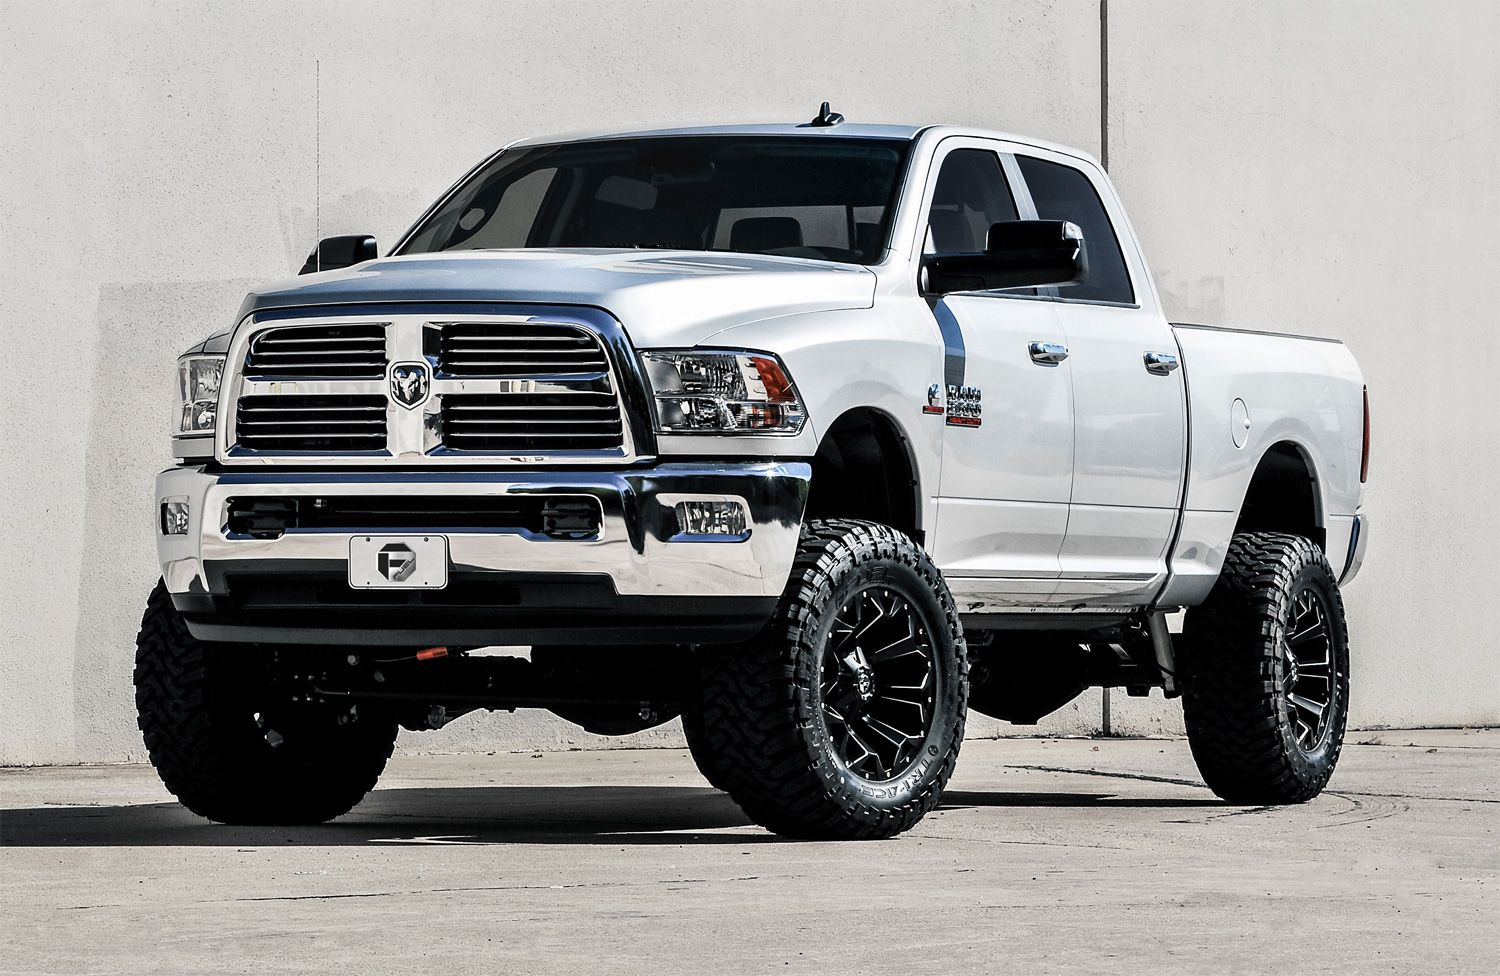 Dodge ram 2500 diesel with the all new fuel assult rims